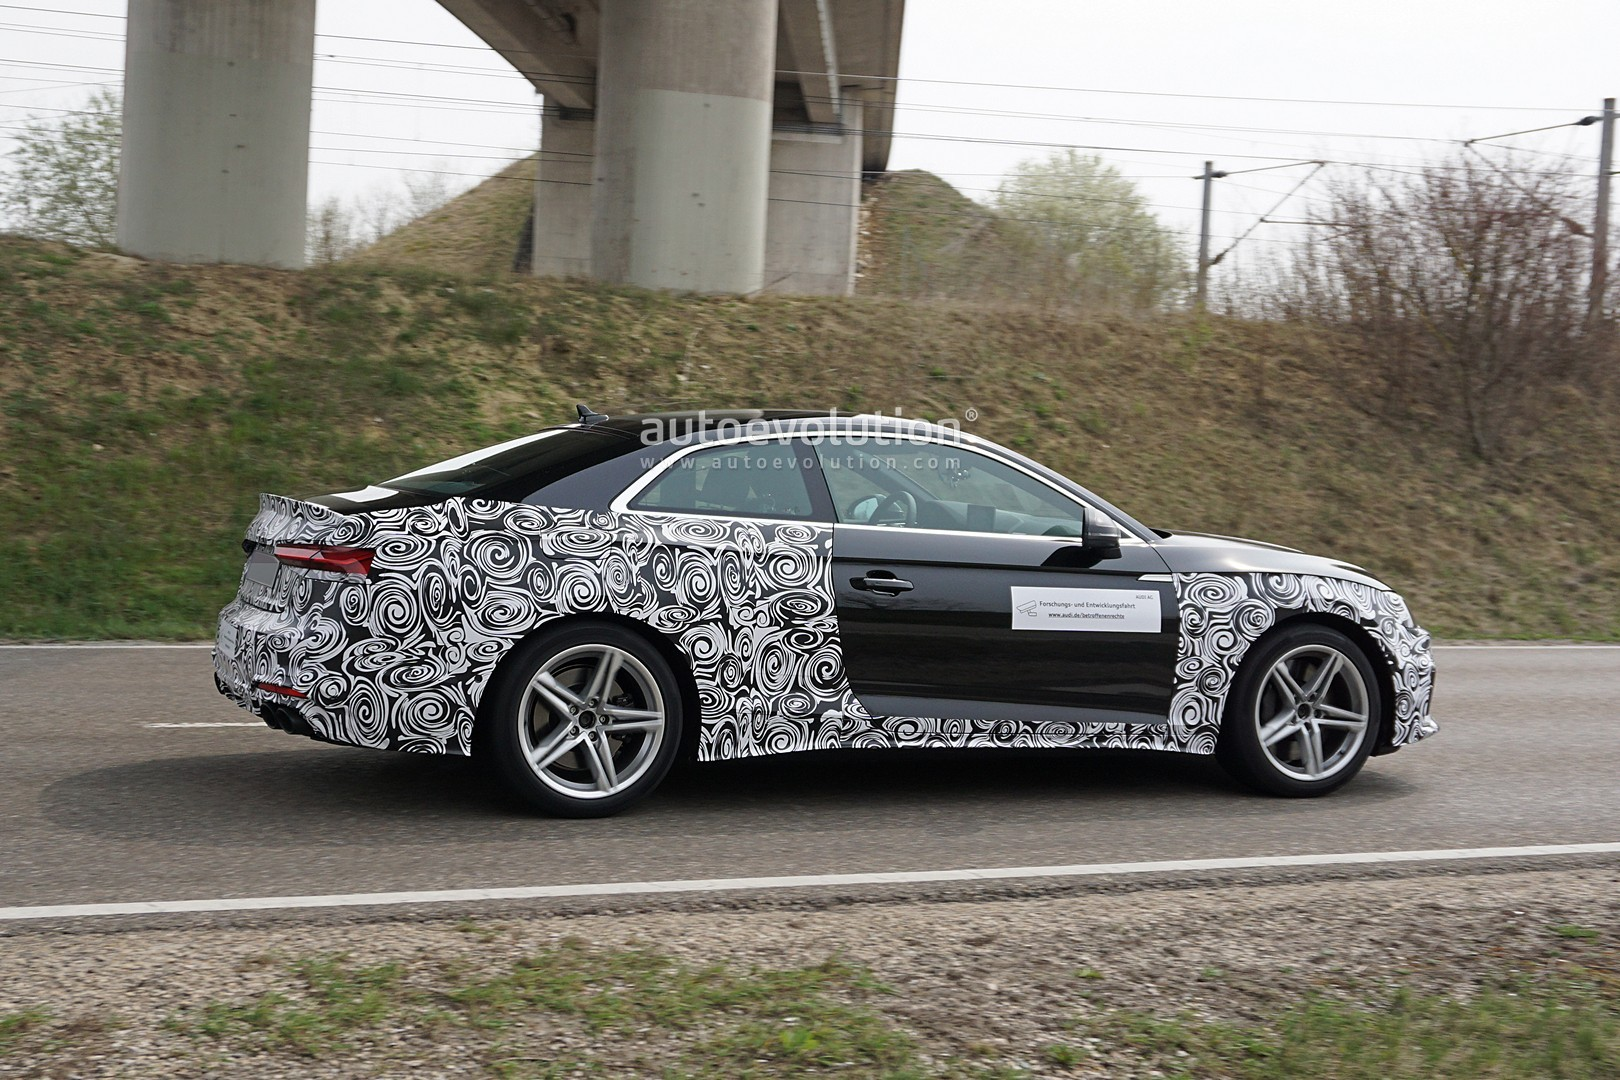 2021 Audi S5 Coupe Facelift Spied, Should Get 3.0 TDI ...